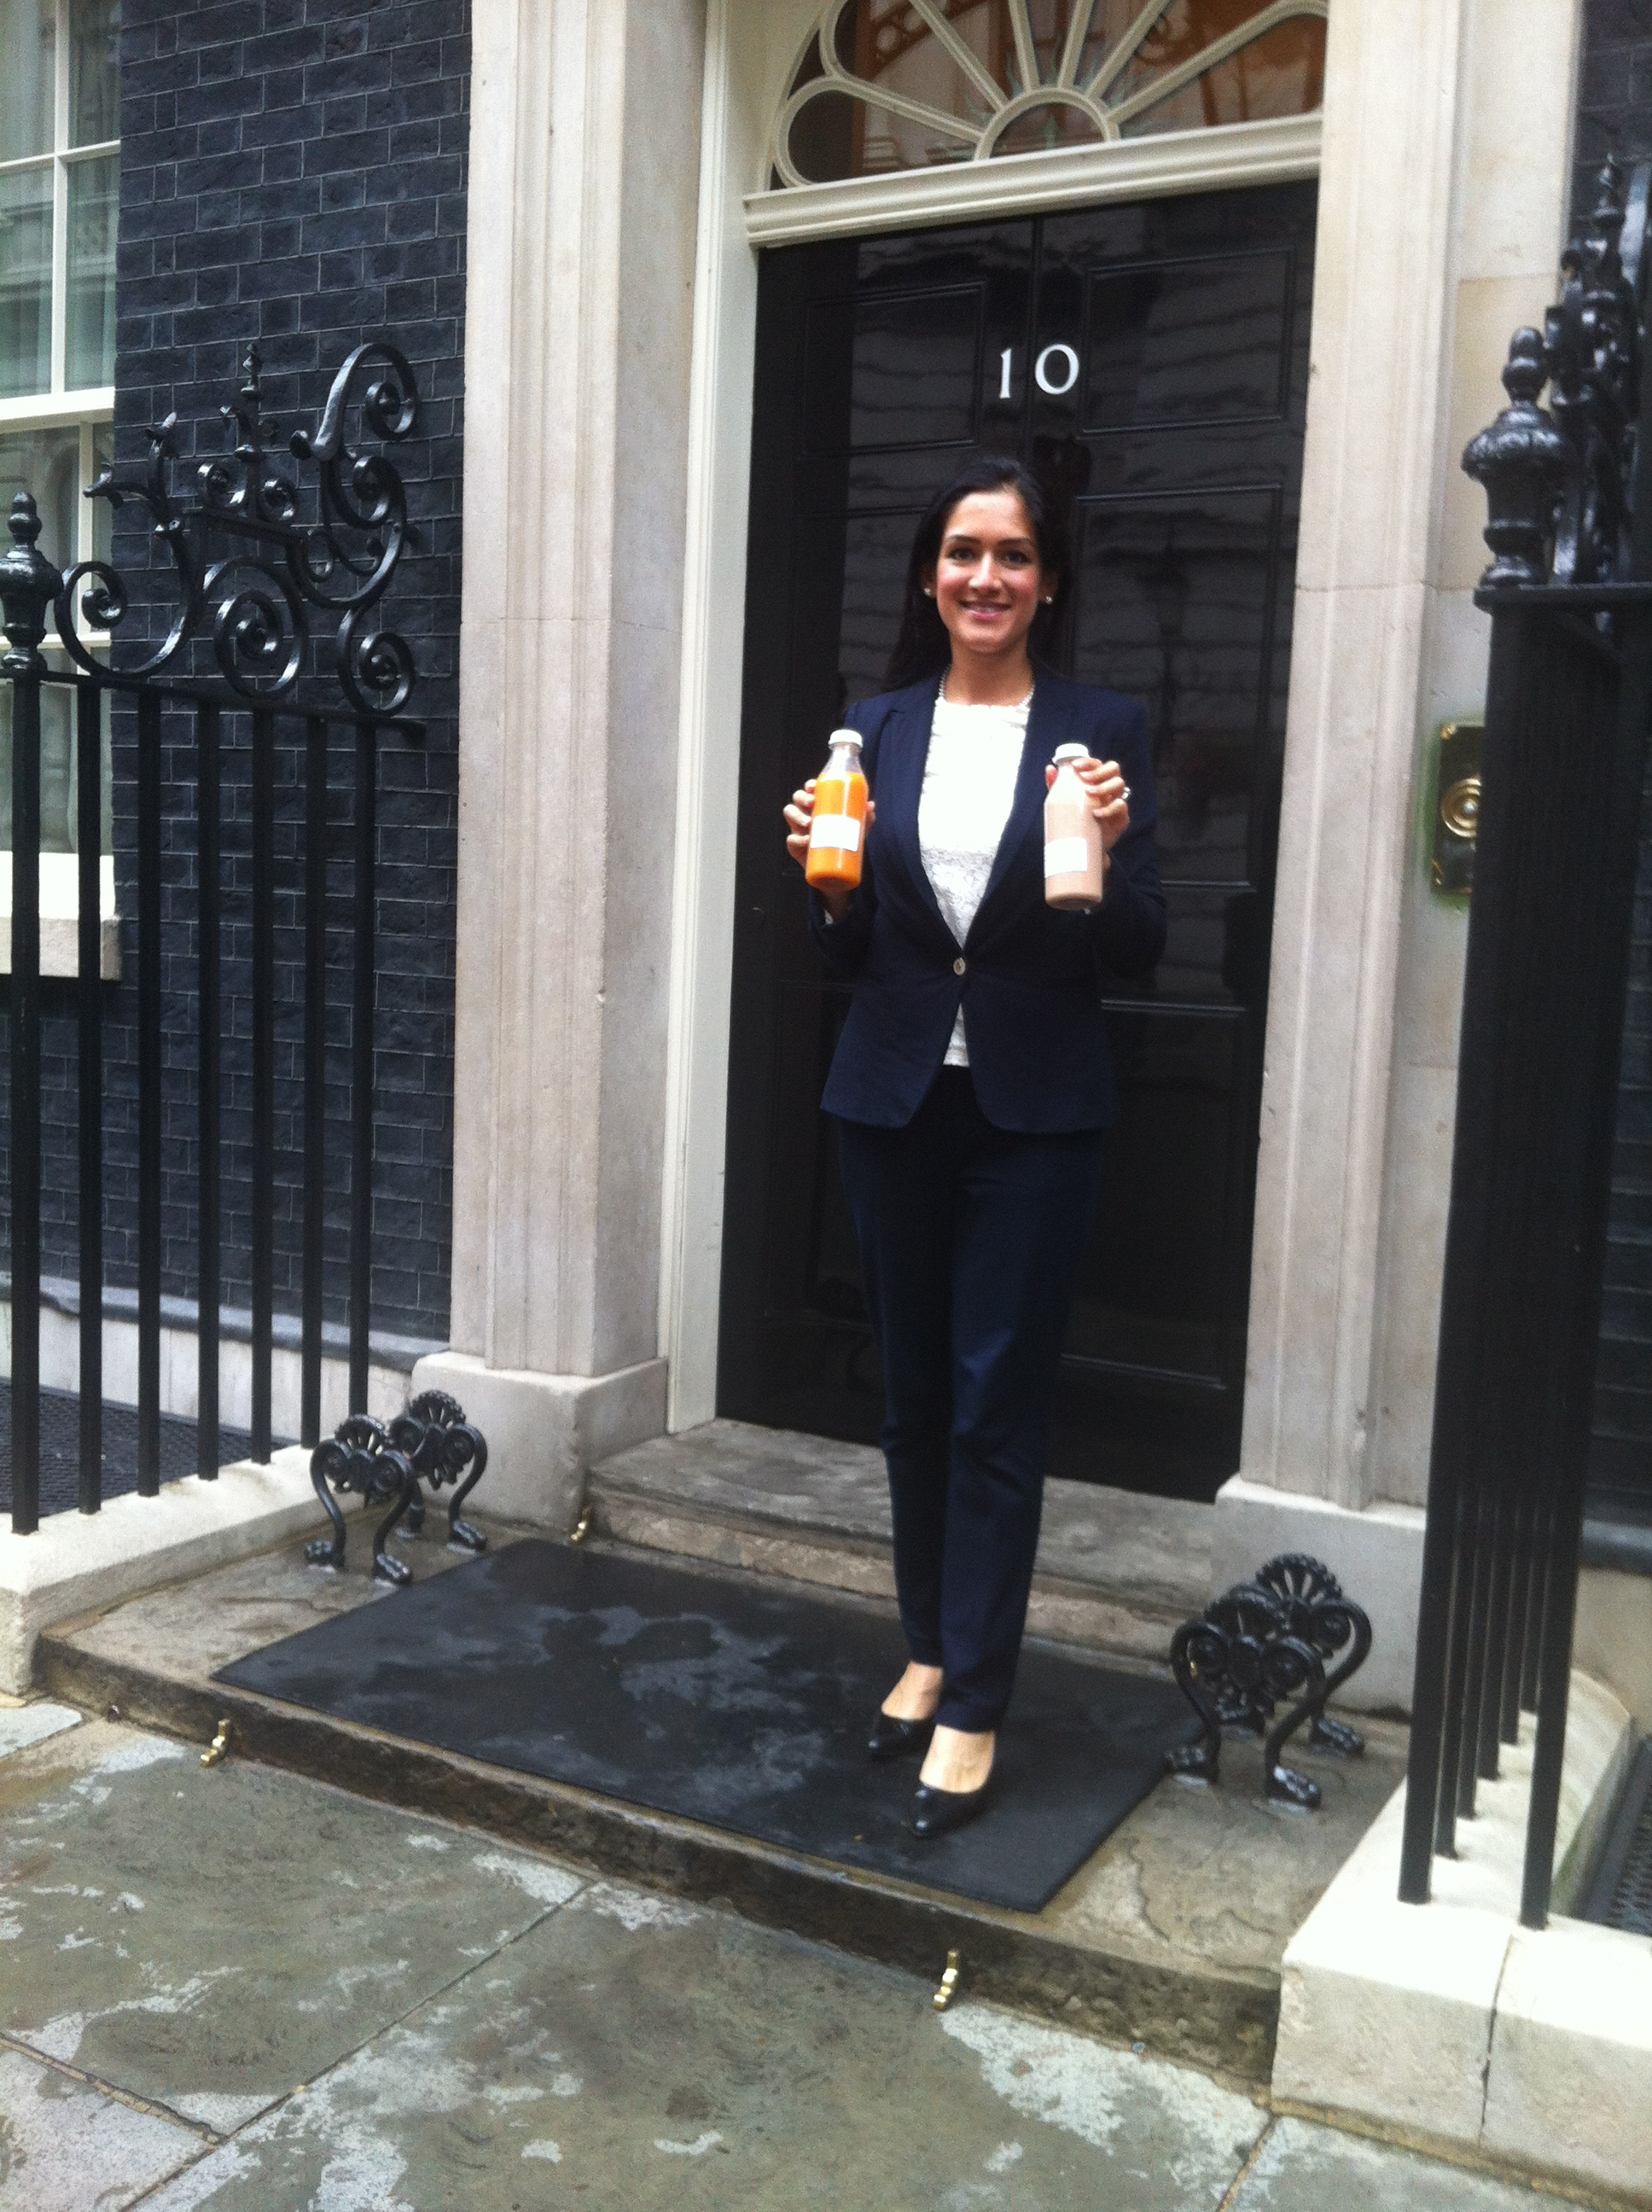 Talking healthy Food & Drink at a Small Business Event at No. 10